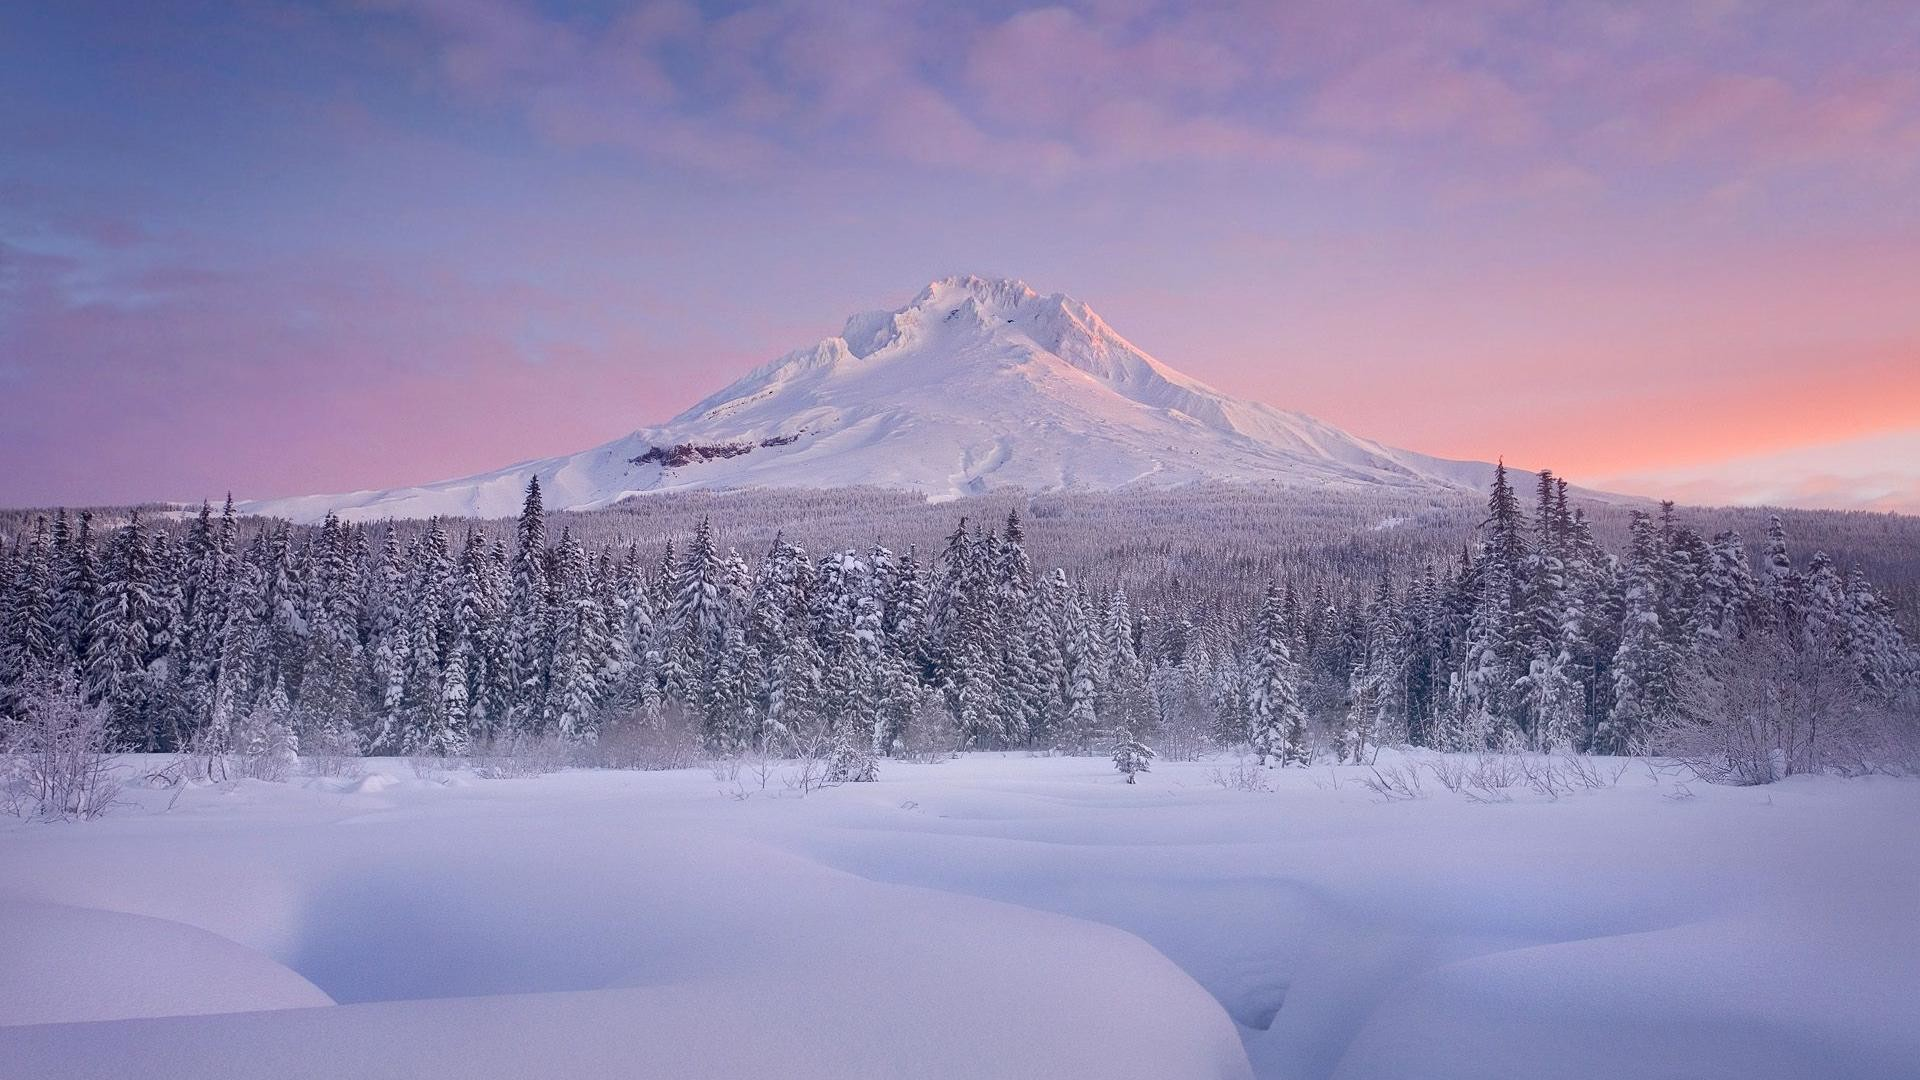 1920x10801440x9001280x800 · Charming winter scenery and mountain snow  background